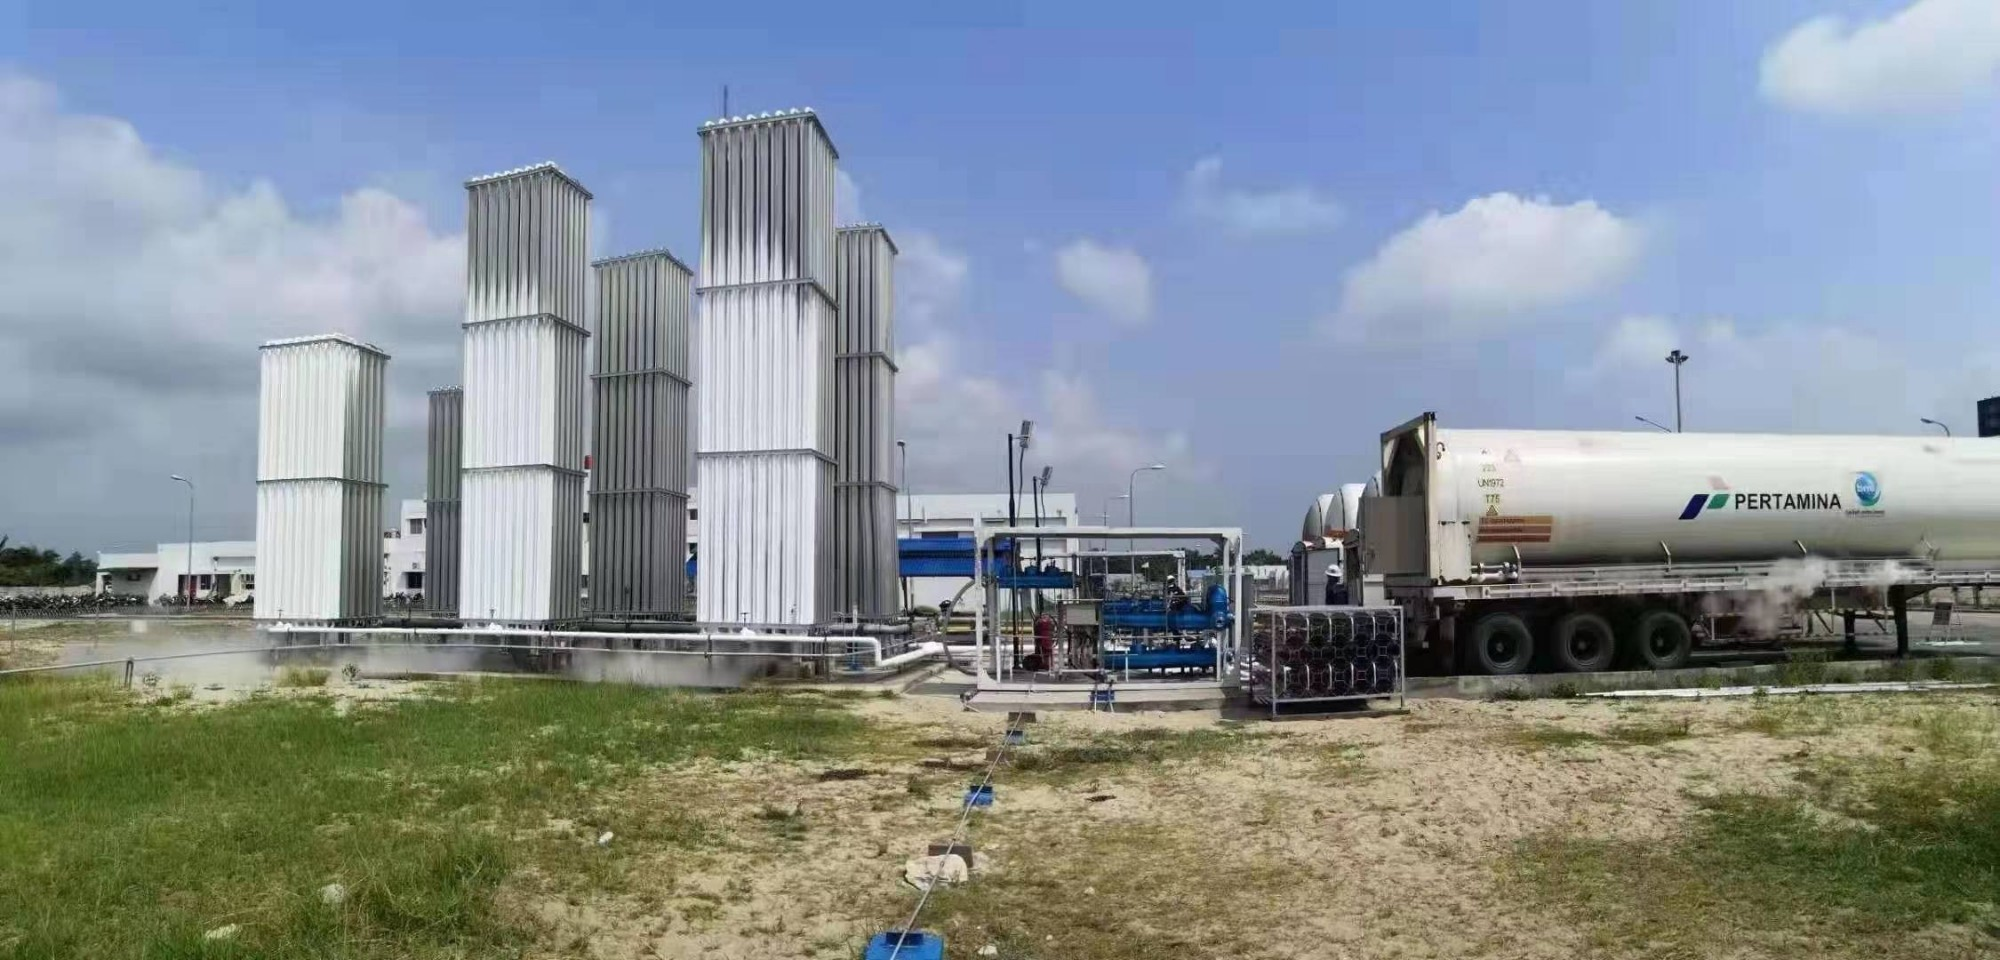 Customized Design LNG Regasification Skid Manufacturers, Customized Design LNG Regasification Skid Factory, Supply Customized Design LNG Regasification Skid